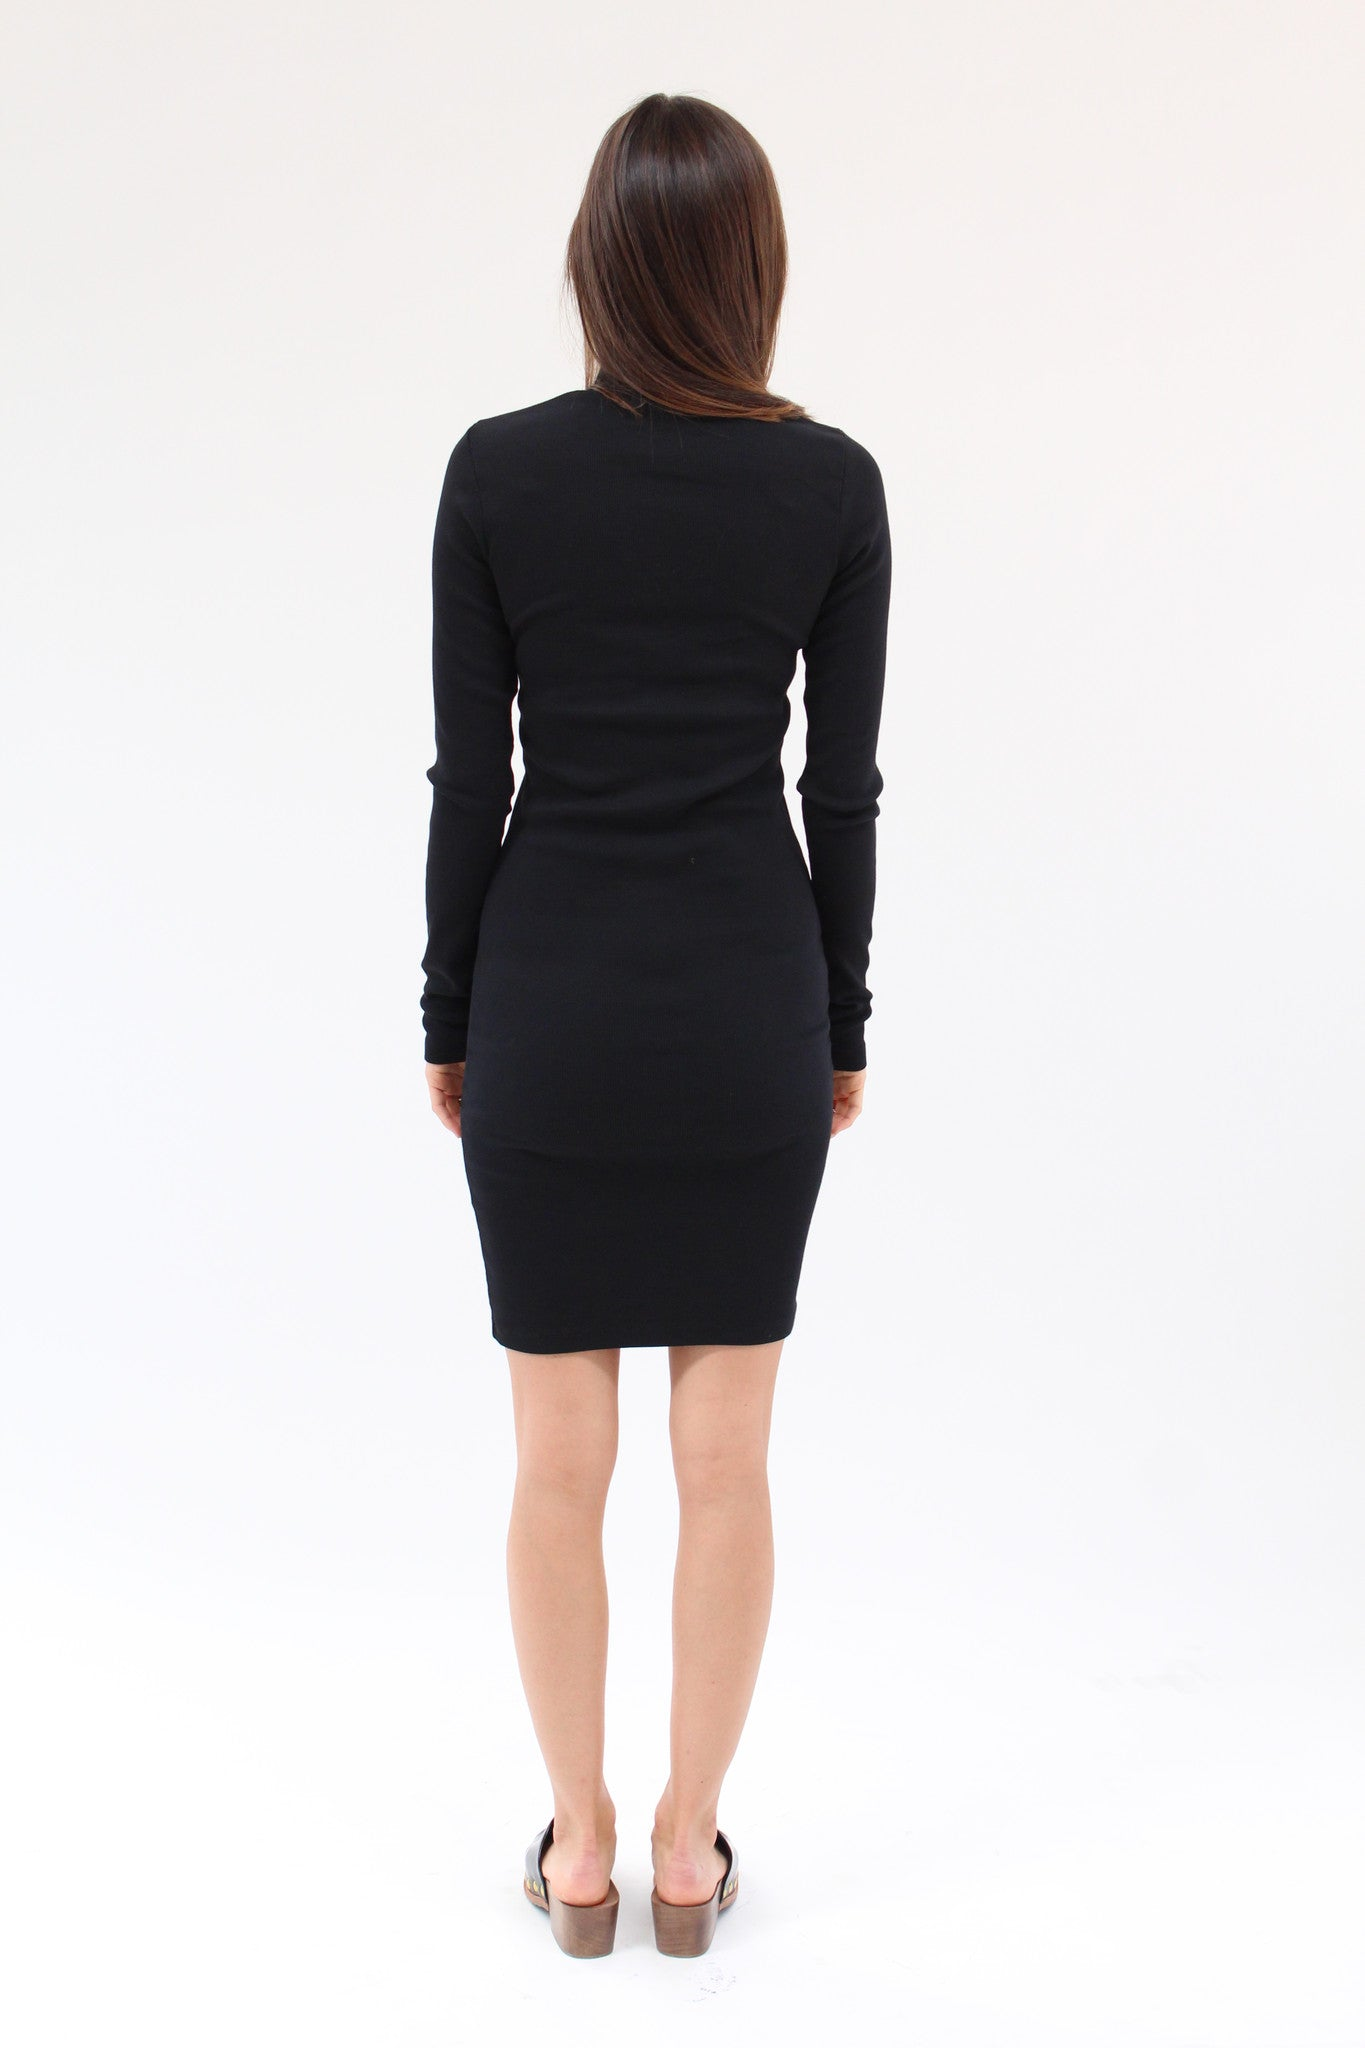 Prairie Underground Core Dress Black / Beklina